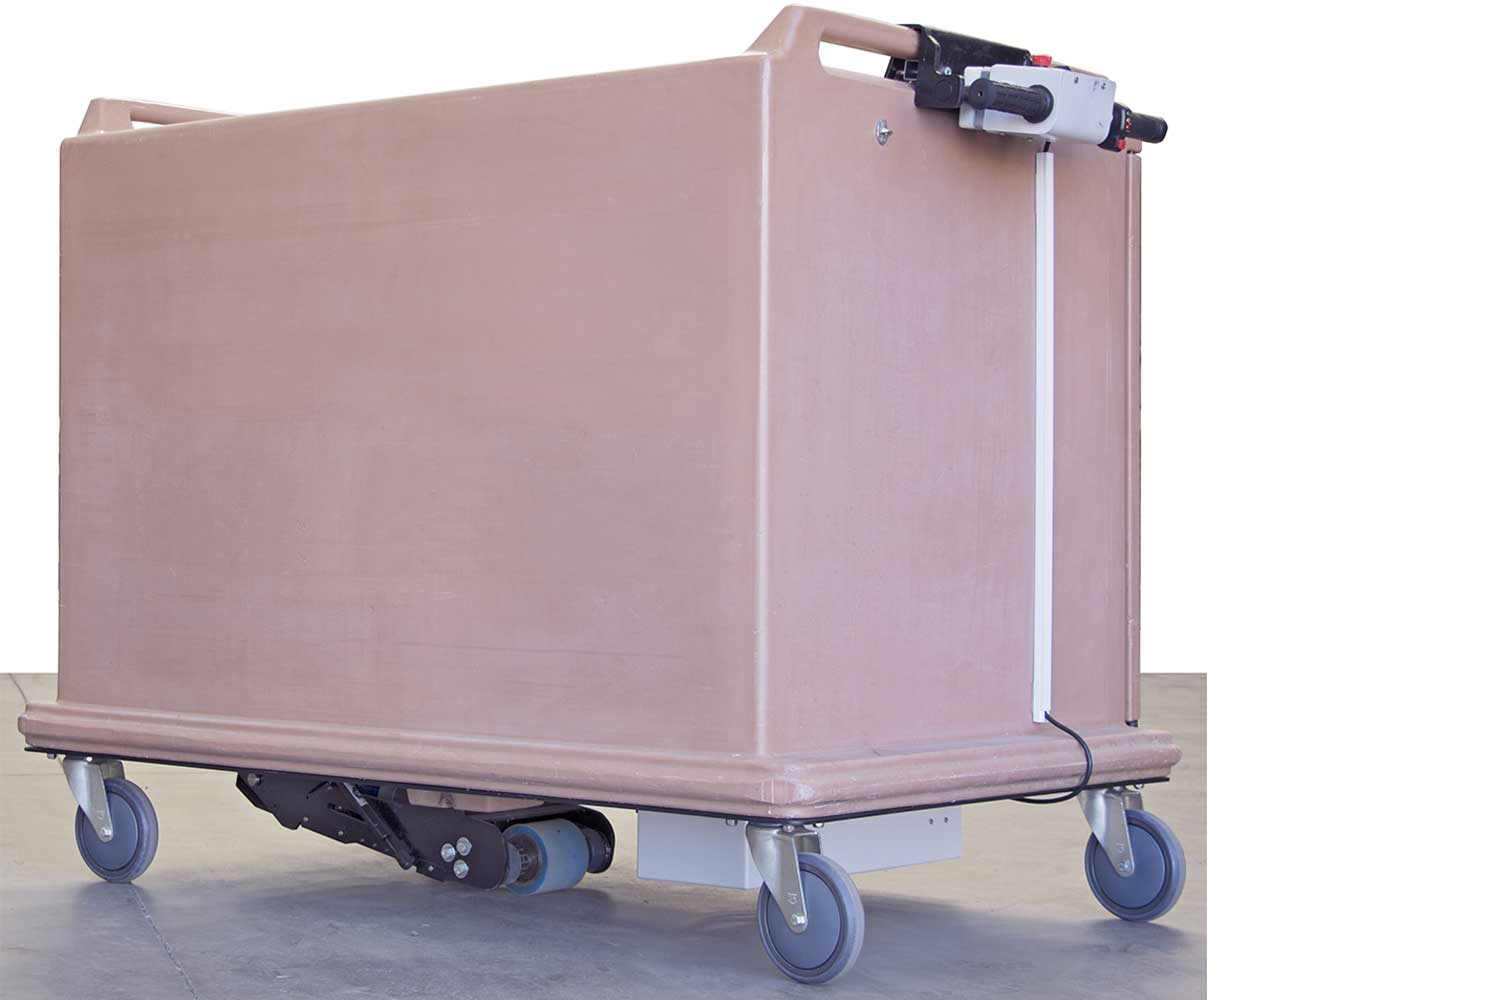 Electrodrive's Powered Fifth Wheel retrofitted to a meal delivery trolley